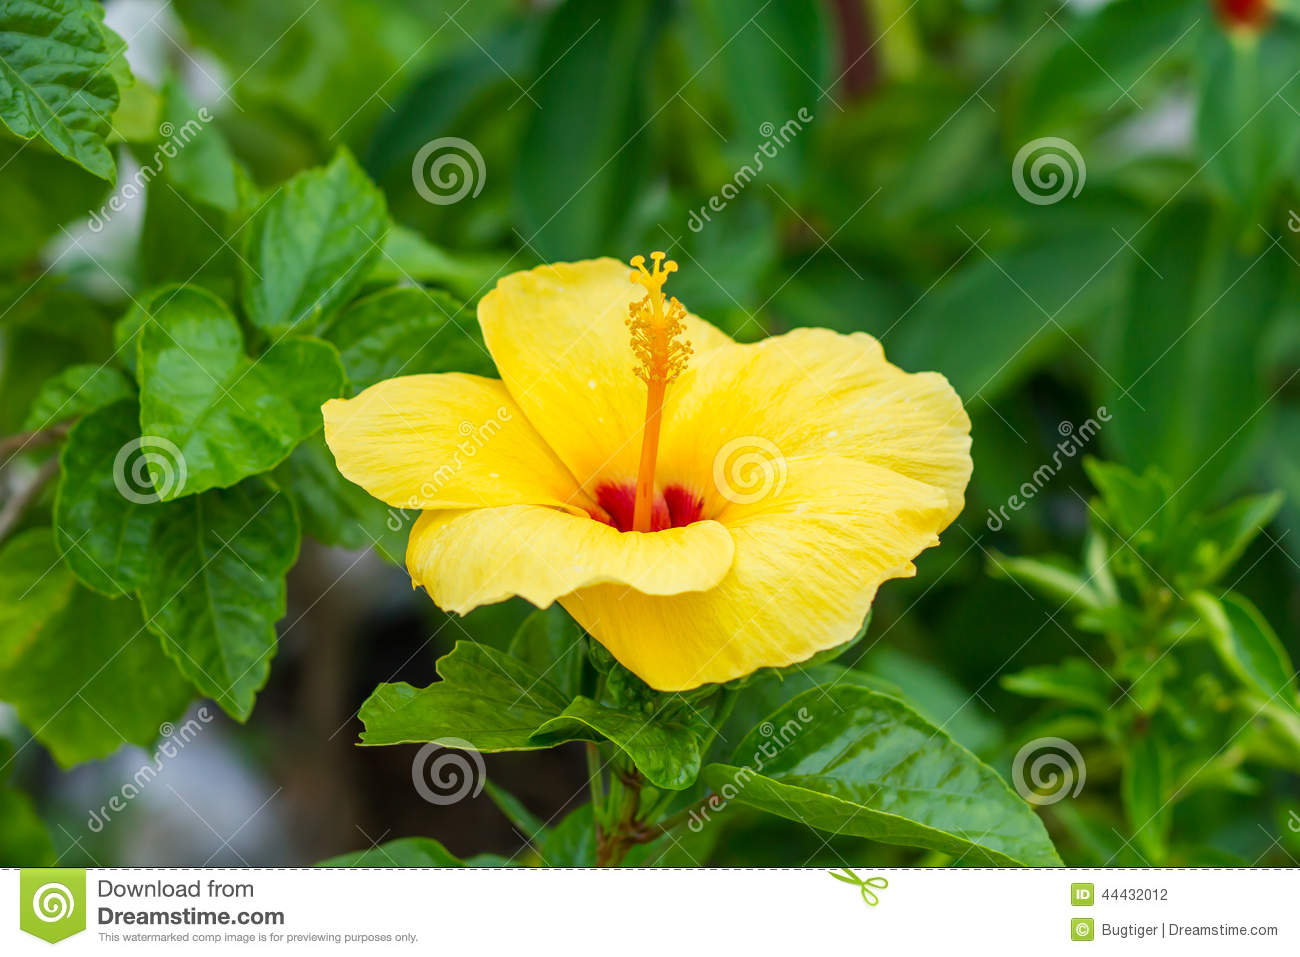 Hibiscus the national flower stock photo image of national download hibiscus the national flower stock photo image of national health 44432012 izmirmasajfo